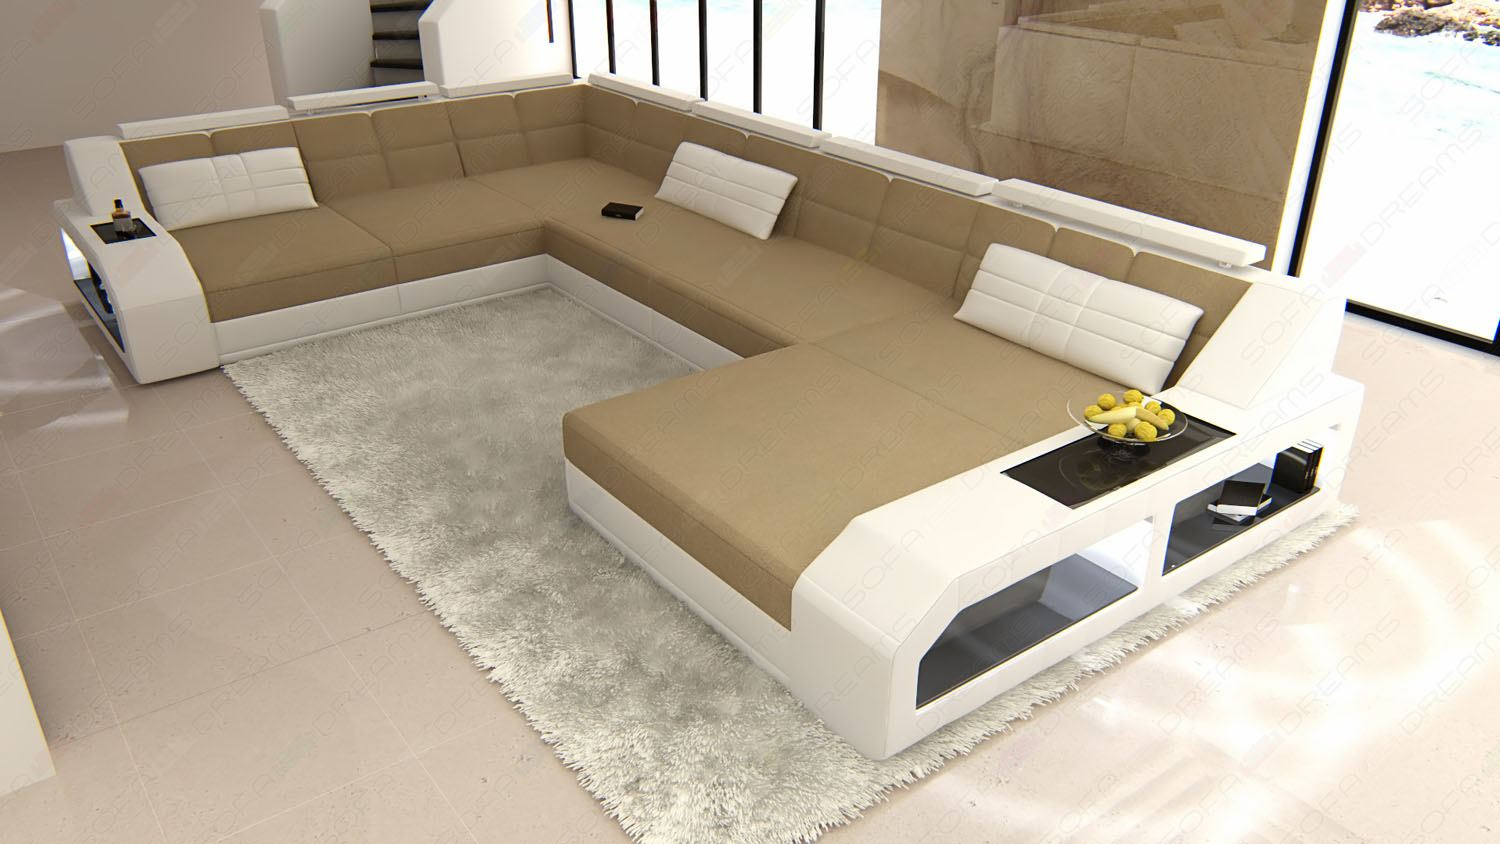 fabric sectional design sofa matera xxl sofa with led. Black Bedroom Furniture Sets. Home Design Ideas